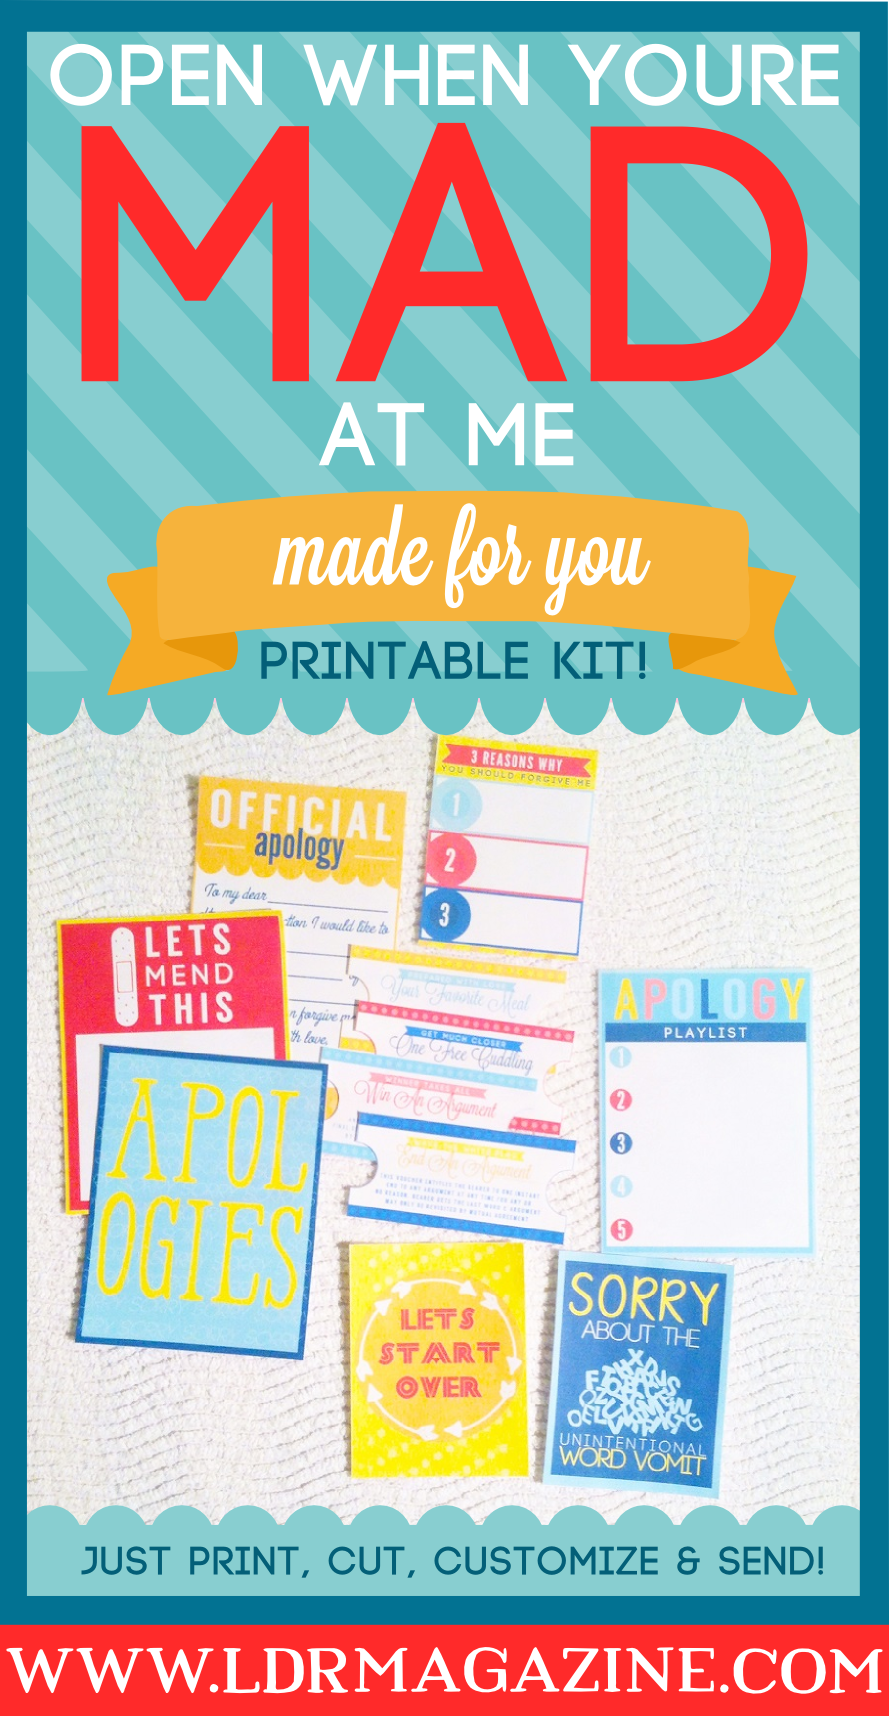 open when you re mad at me letter six open when printable kits ldr magazine 907